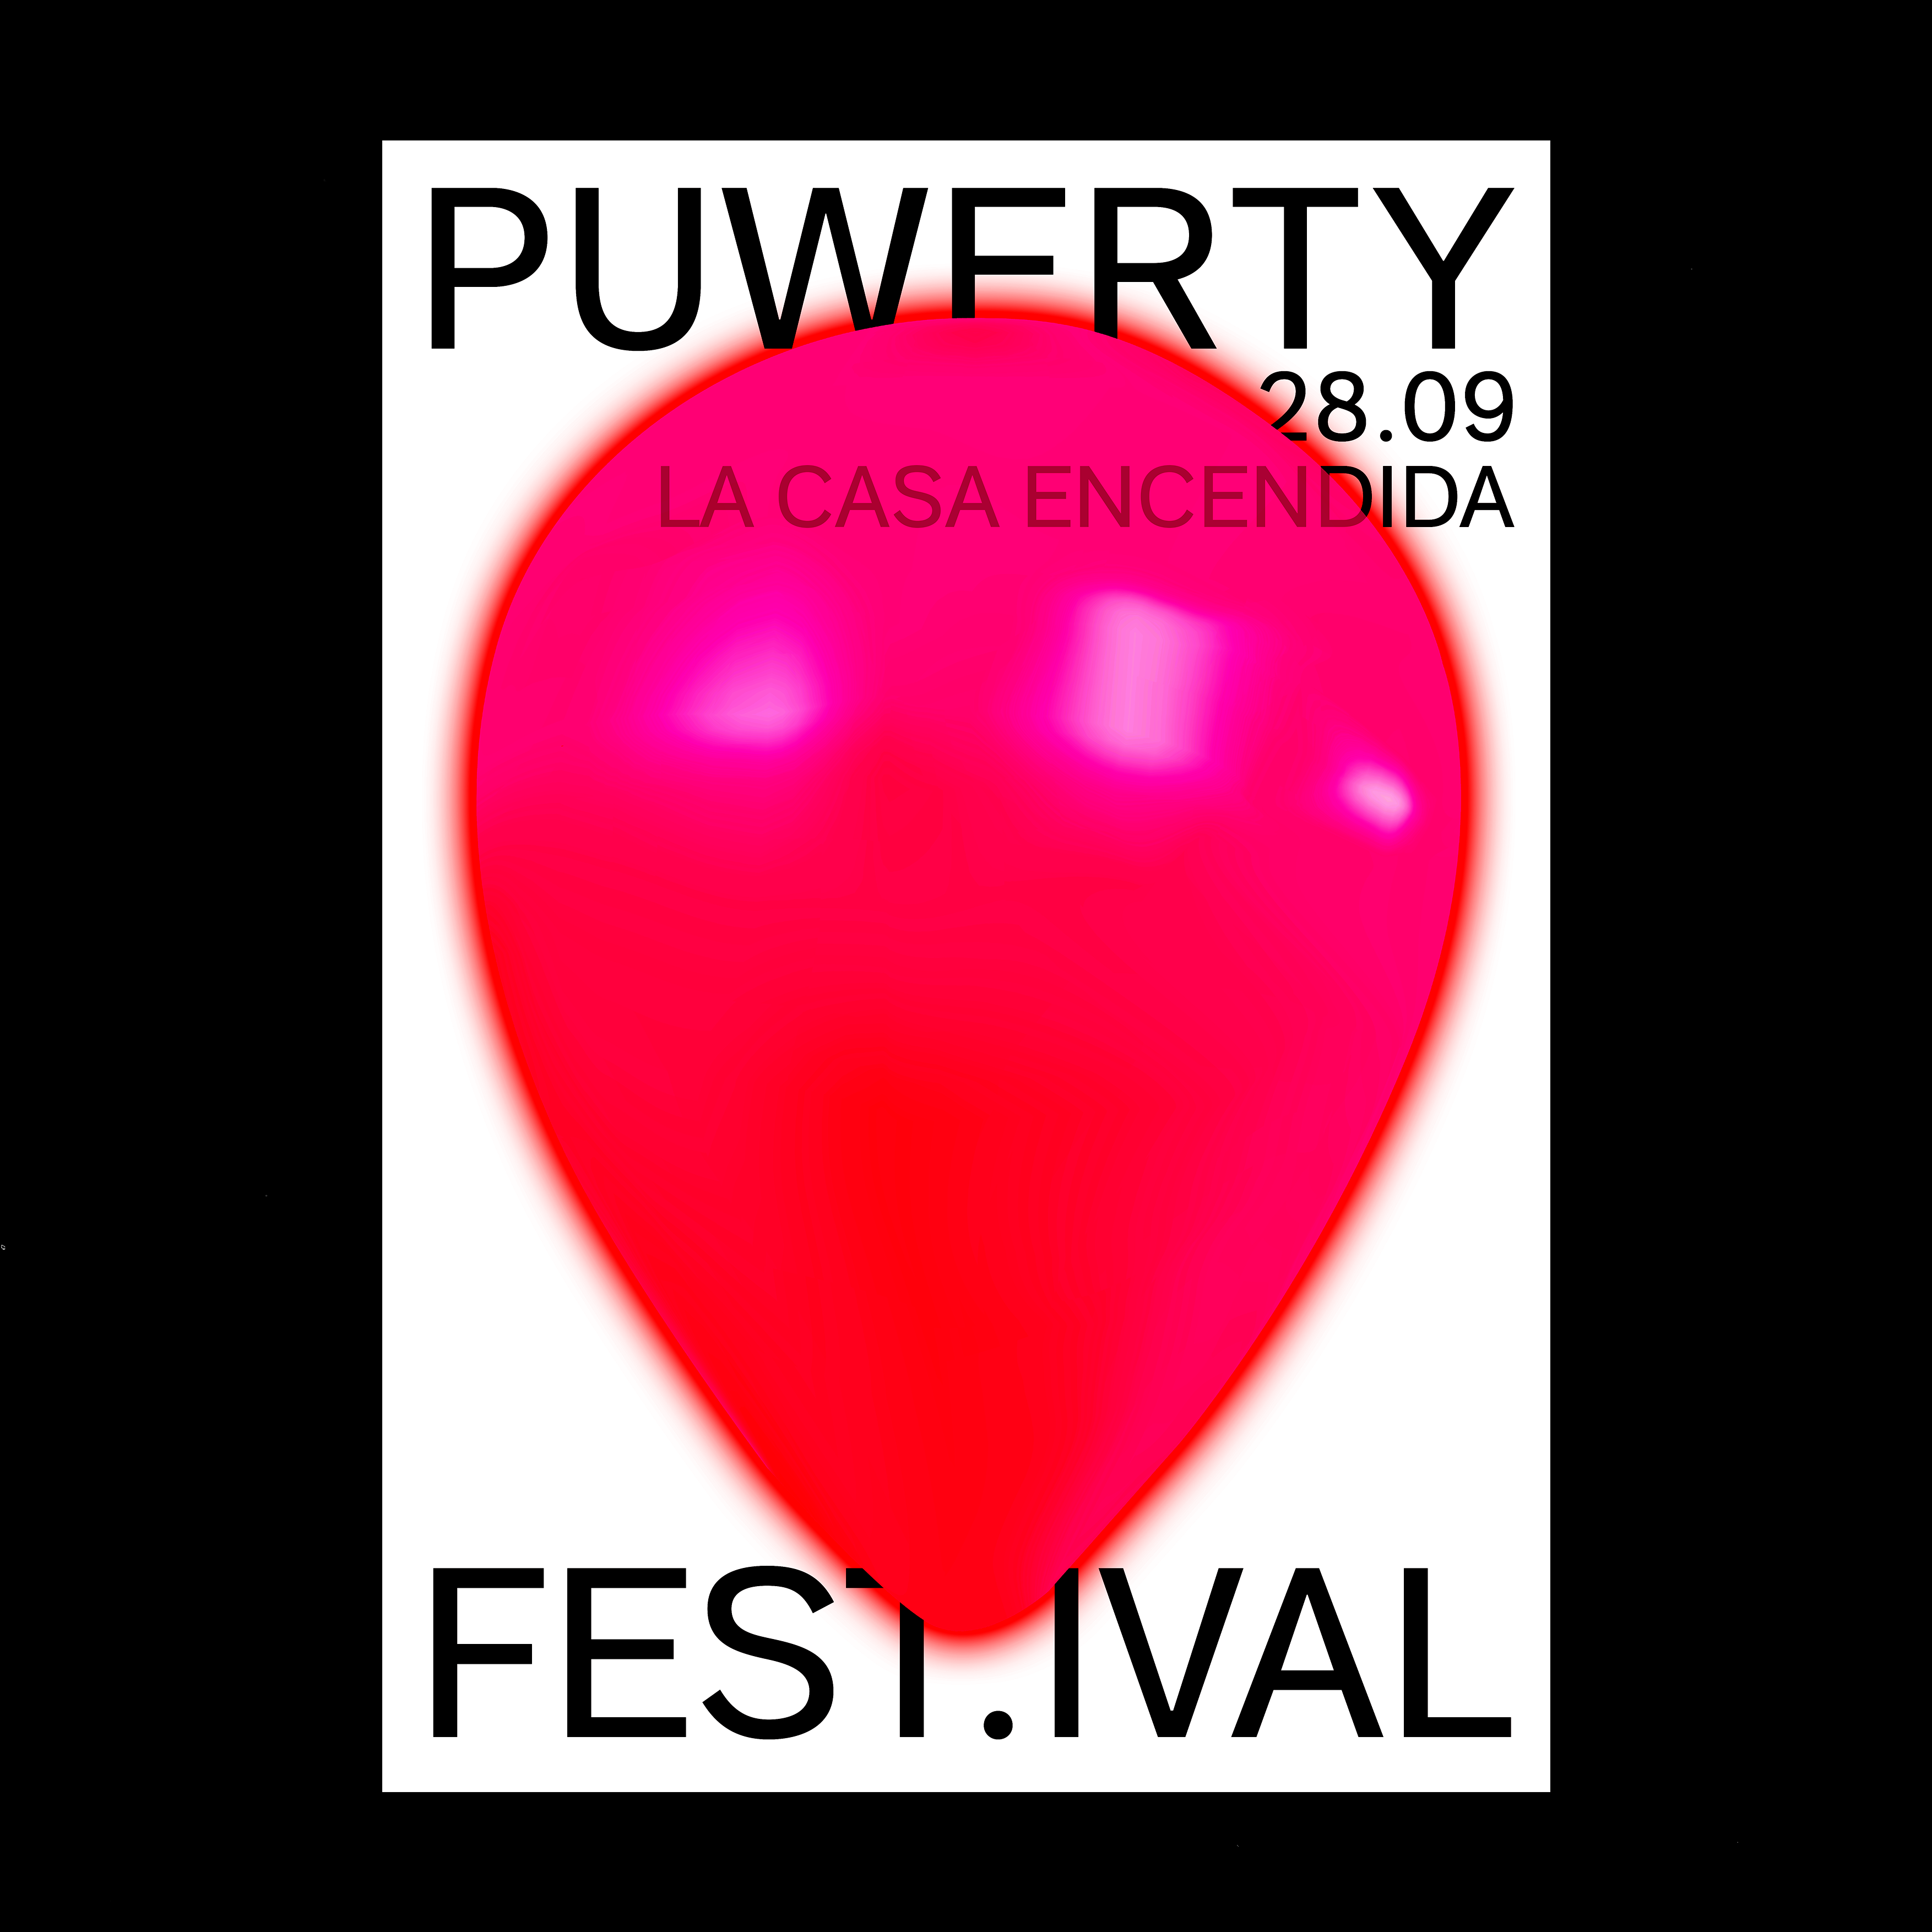 Puwerty Festival 2019 by David  - Creative Work